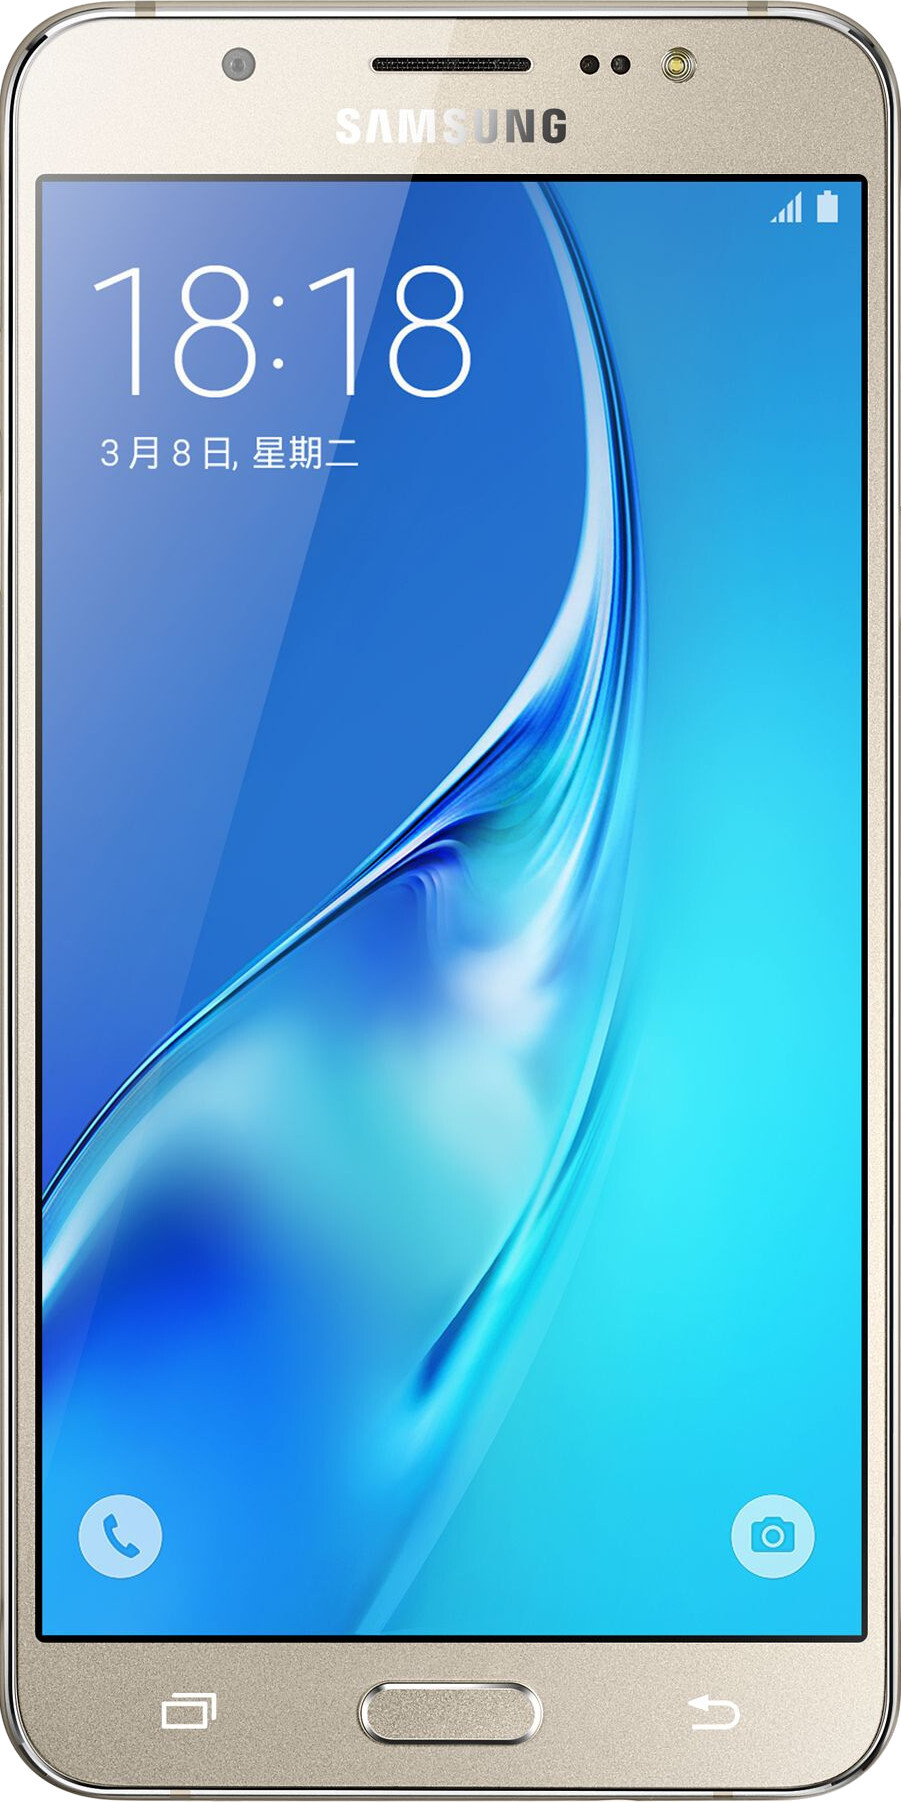 Samsung Galaxy J7 (2016) Size - Real life visualization and comparison